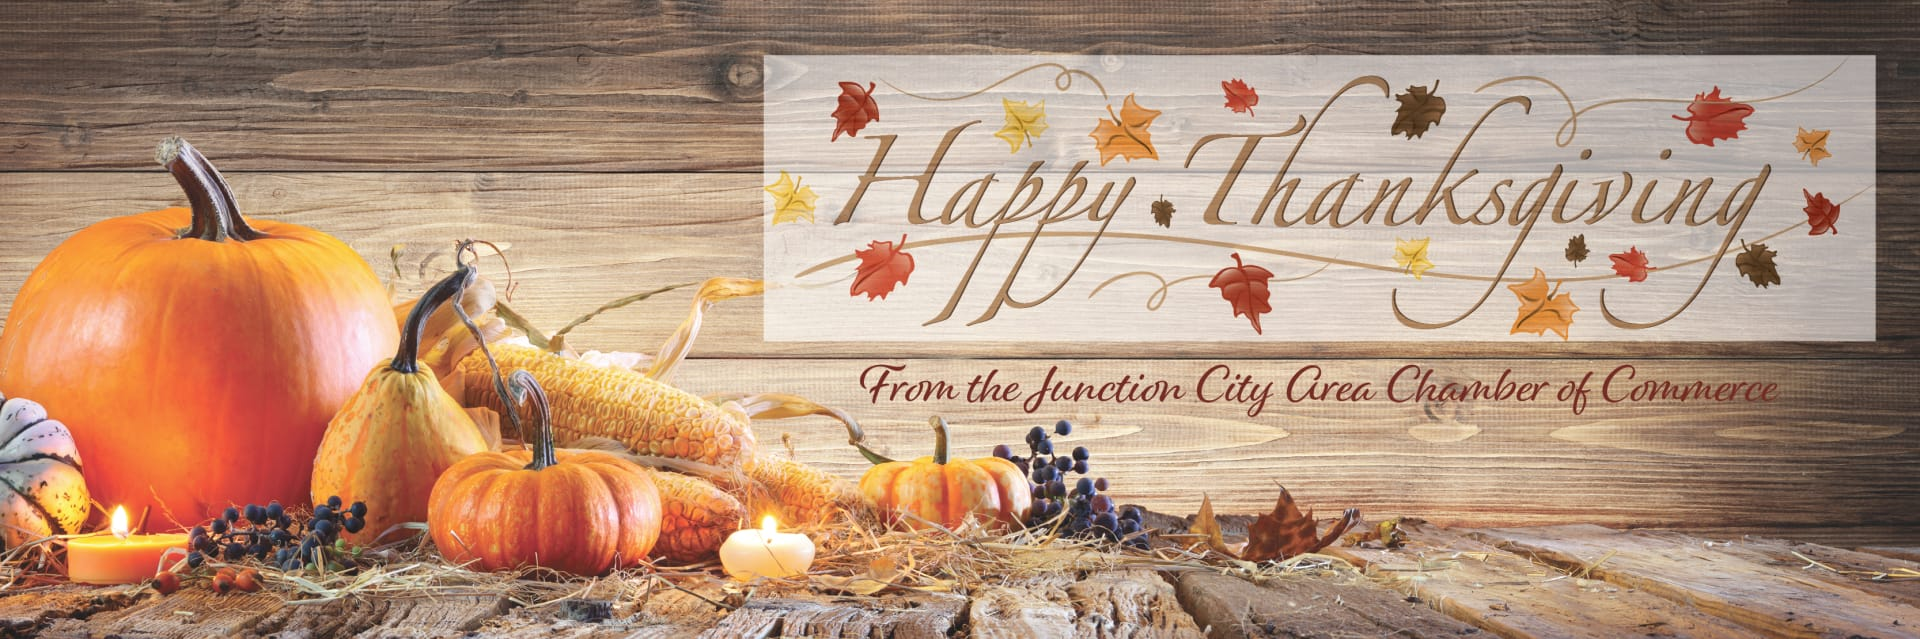 HappyThanksgiving-Web-Banner-w1920.jpg